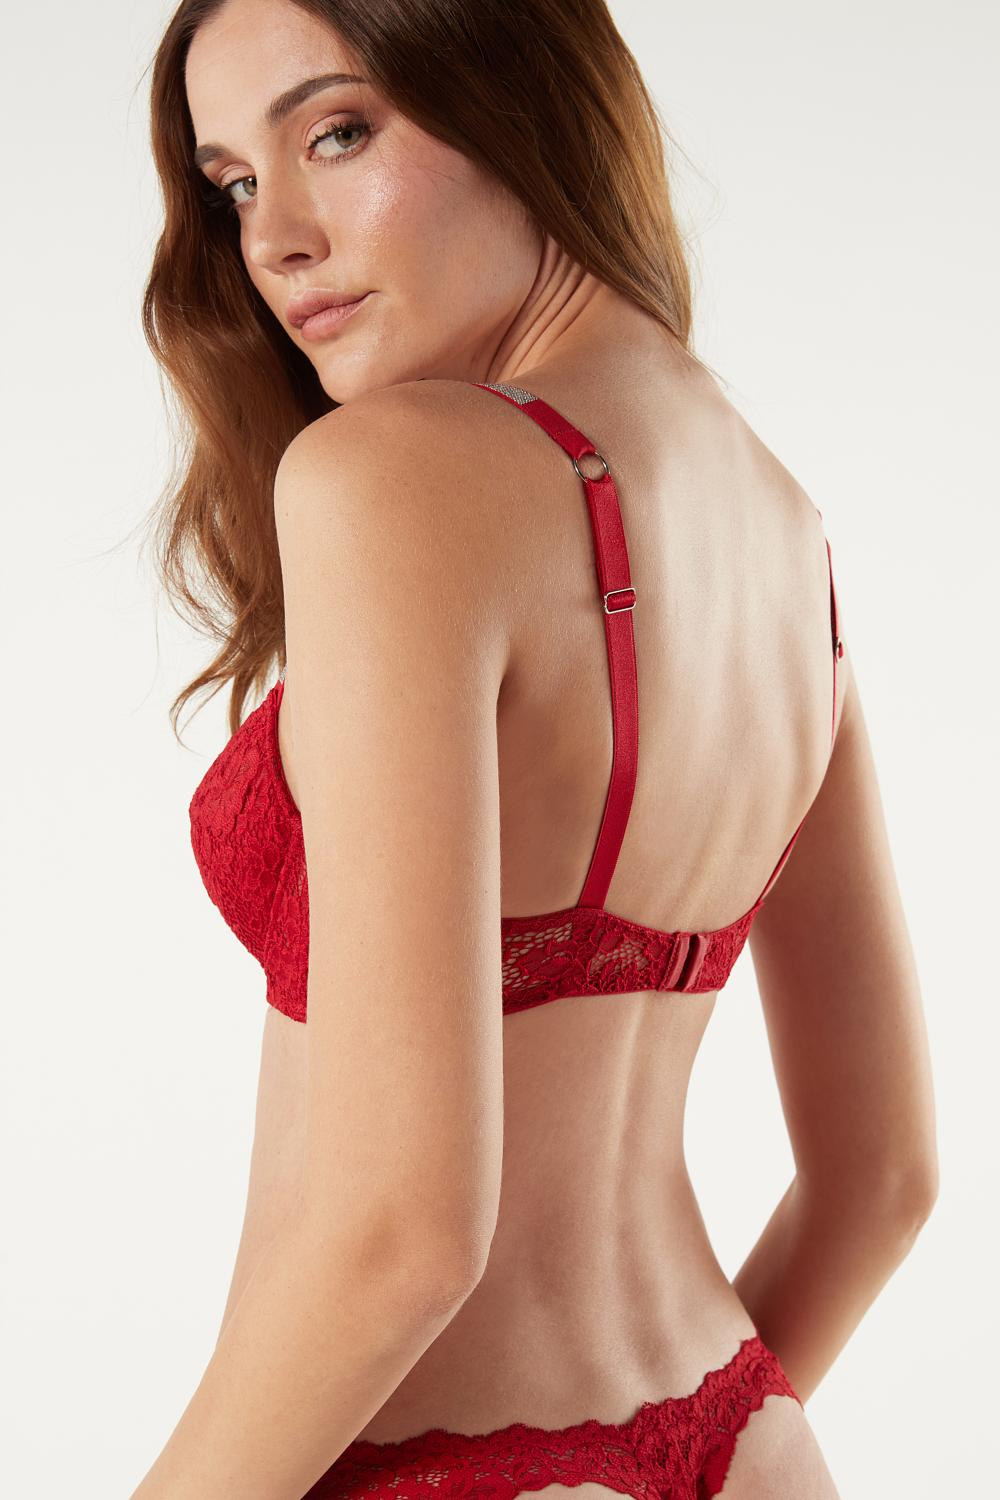 Carioca Holiday Lights Bra